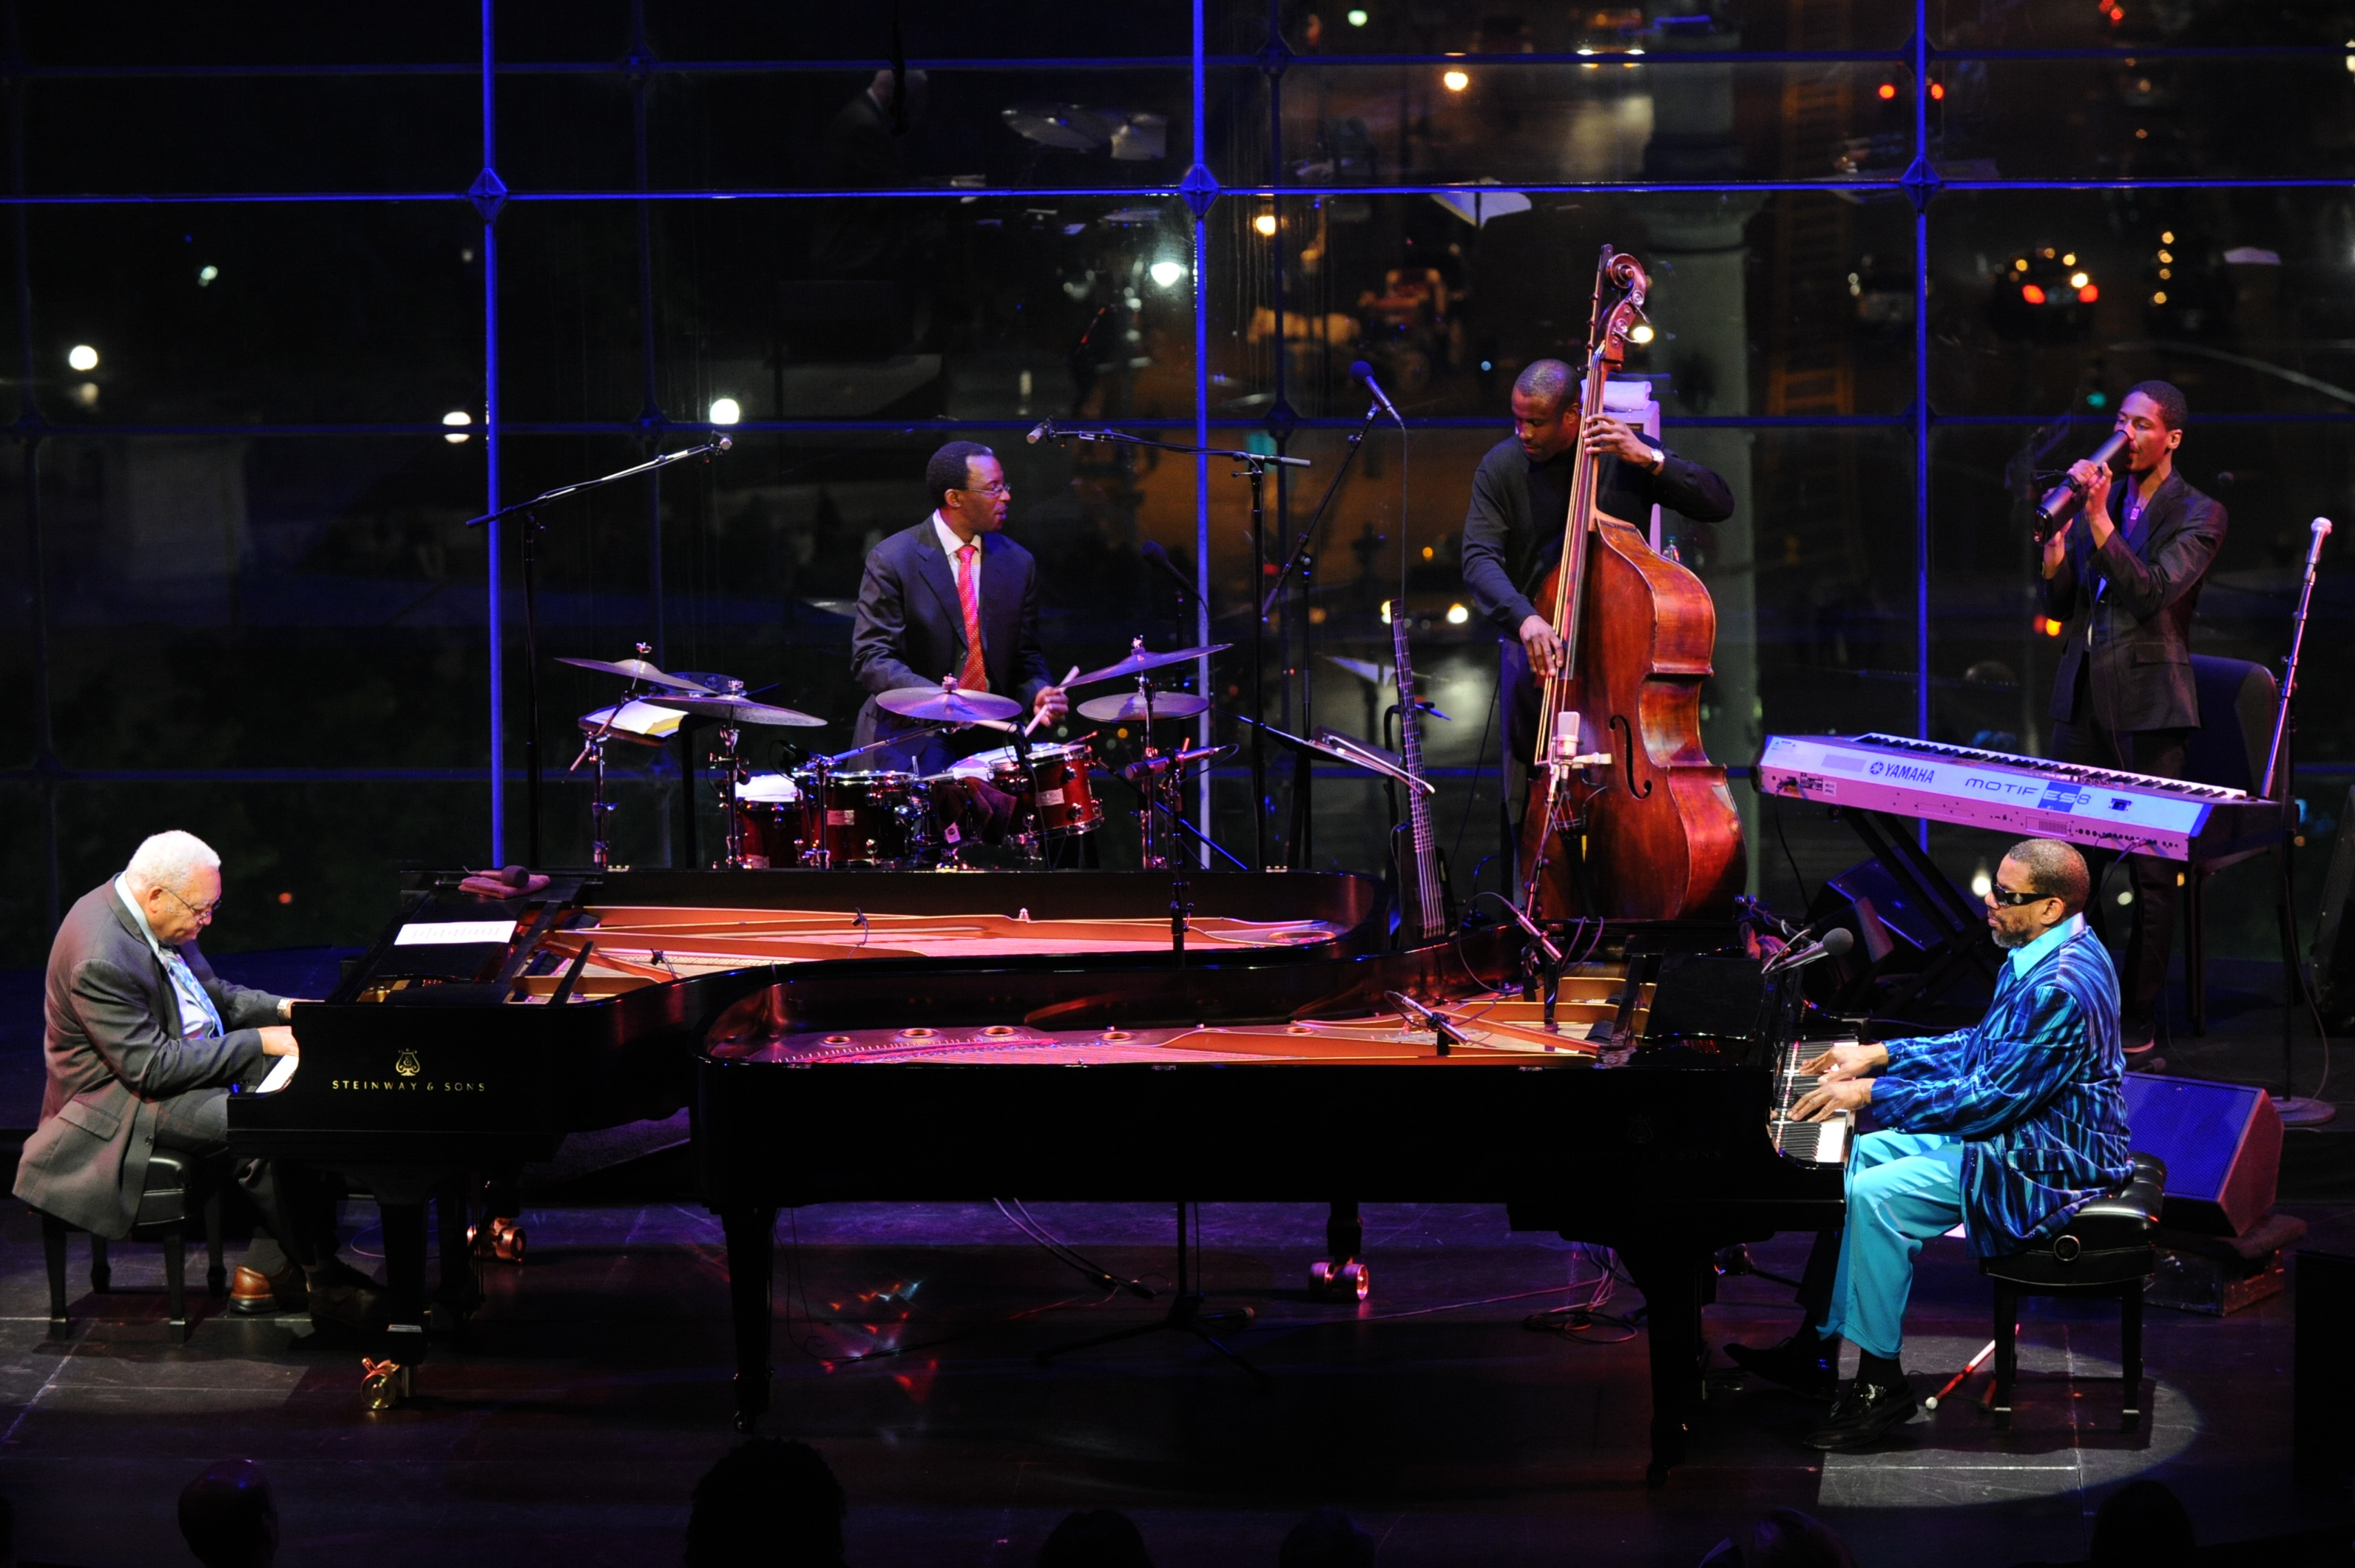 New Orleans Piano Kings - Jazz at Lincoln Center, Allen Room, 5/11/12